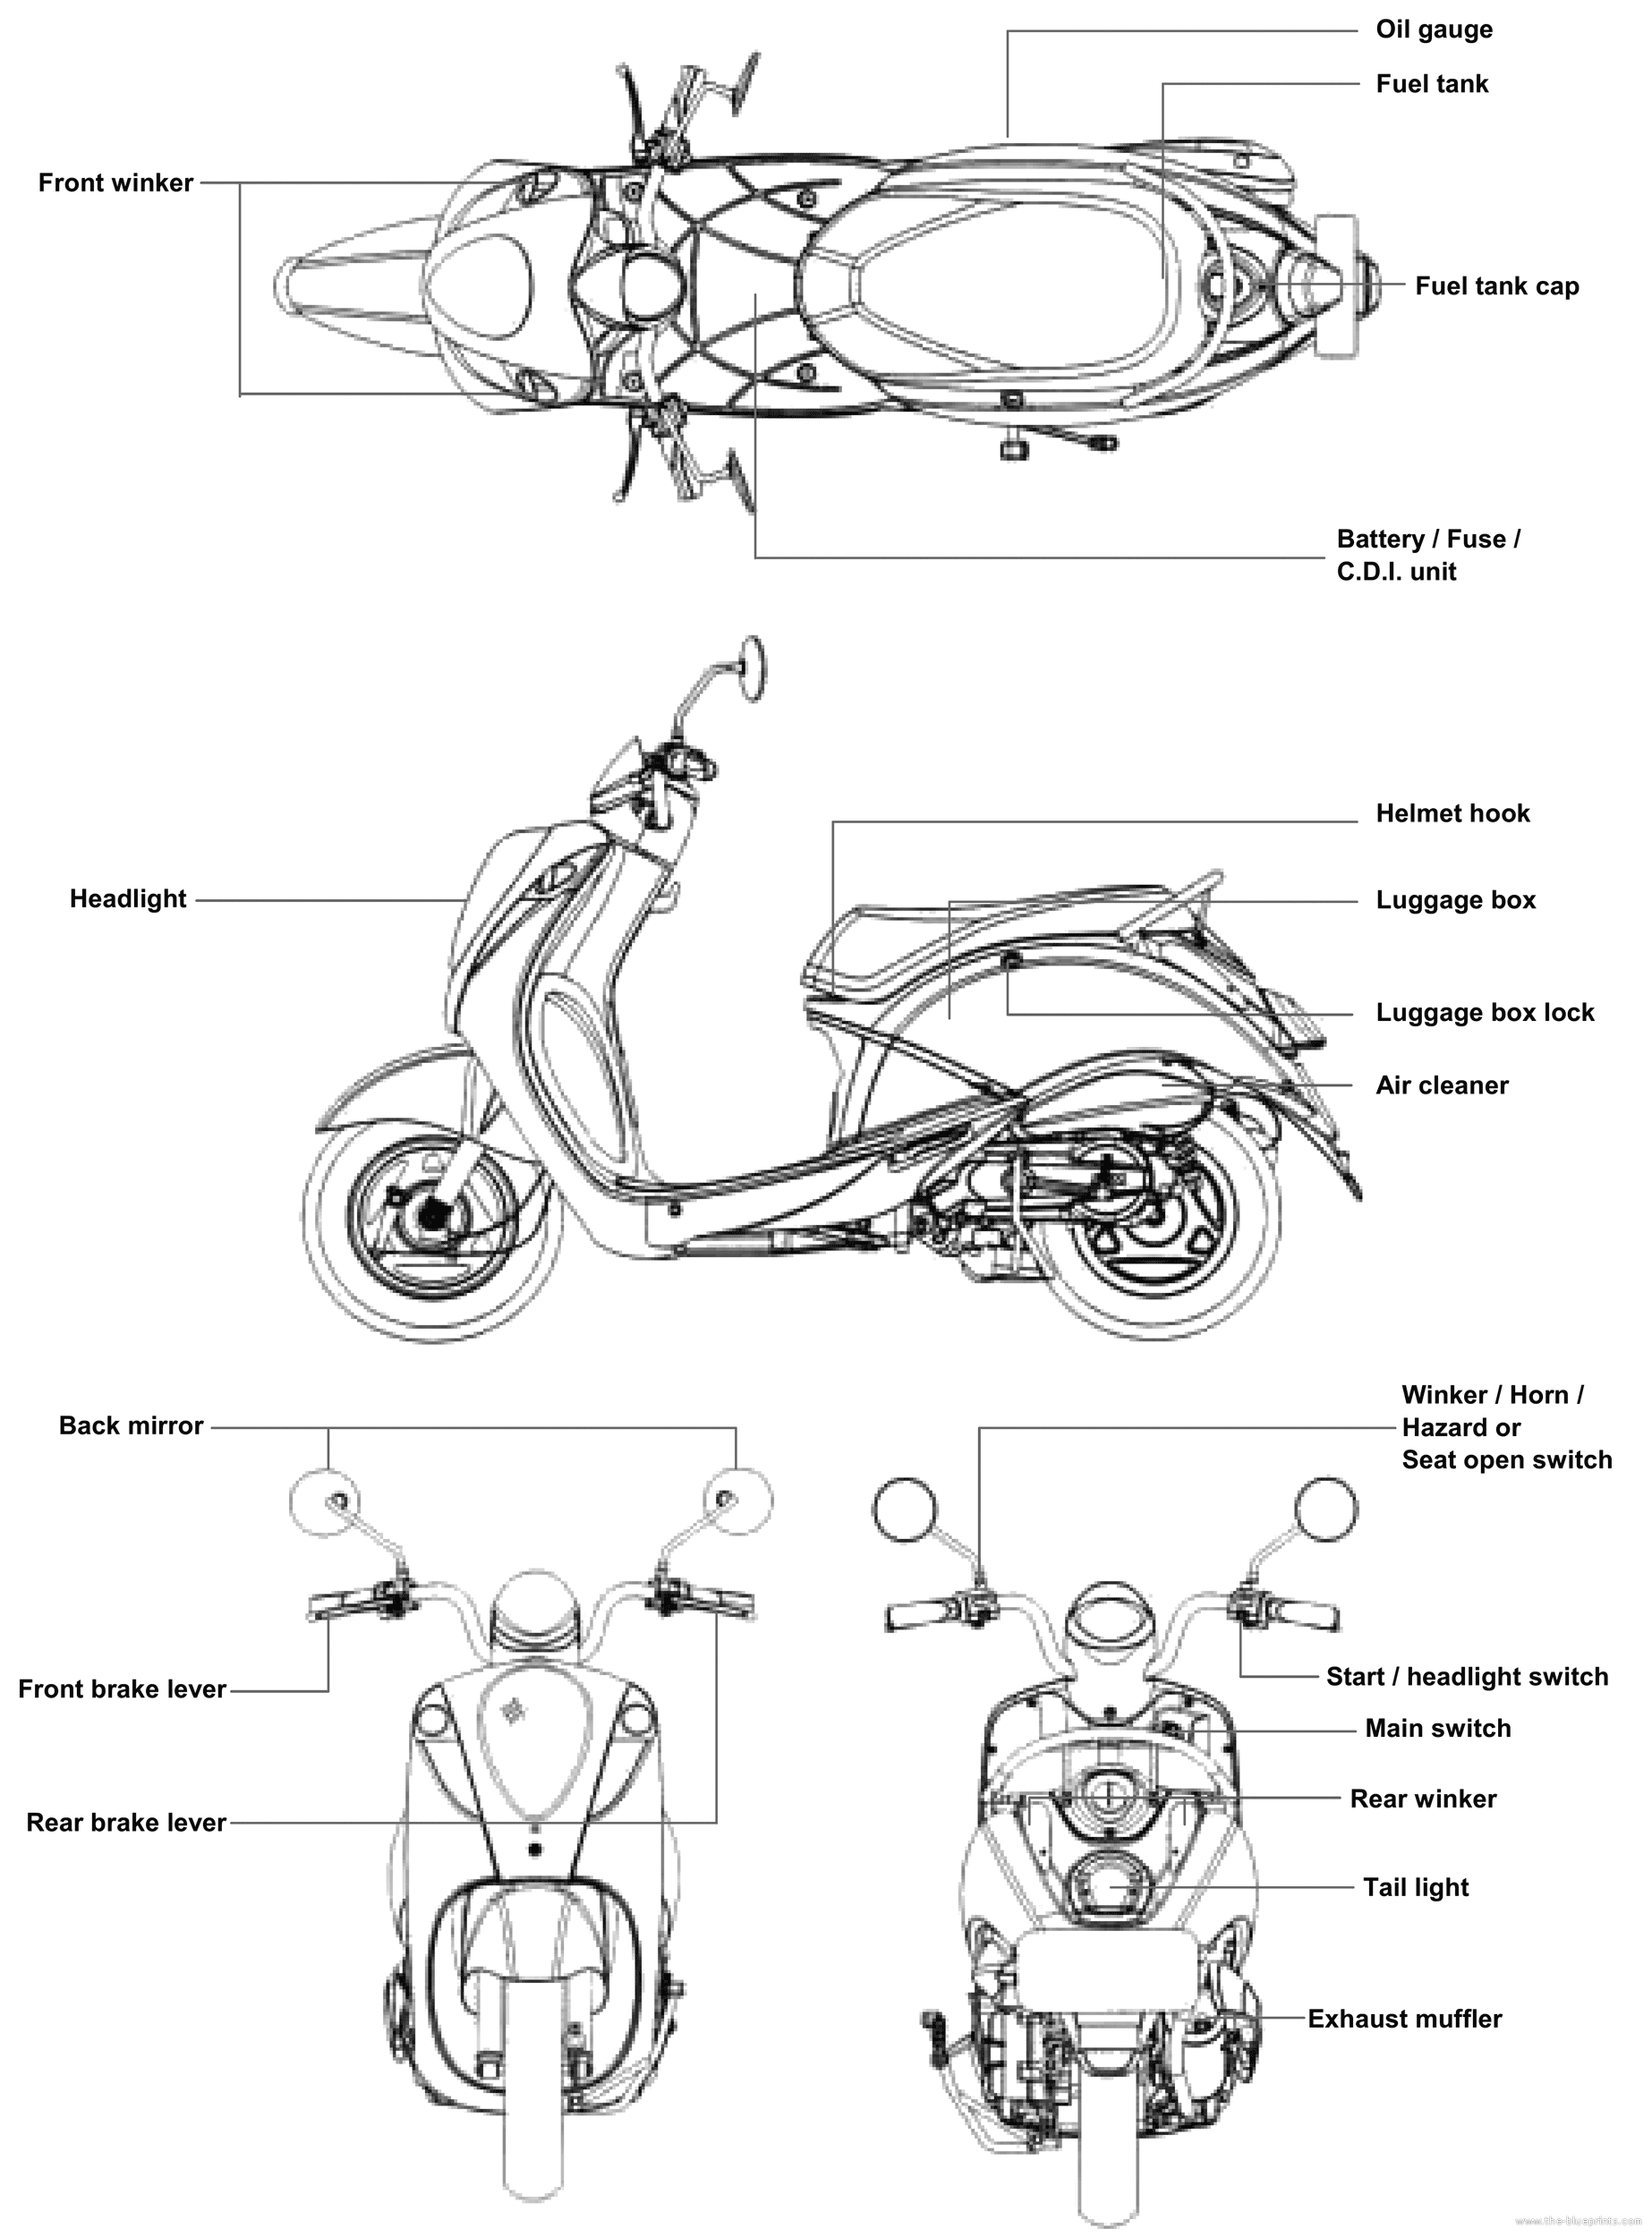 electric scooter engine diagram